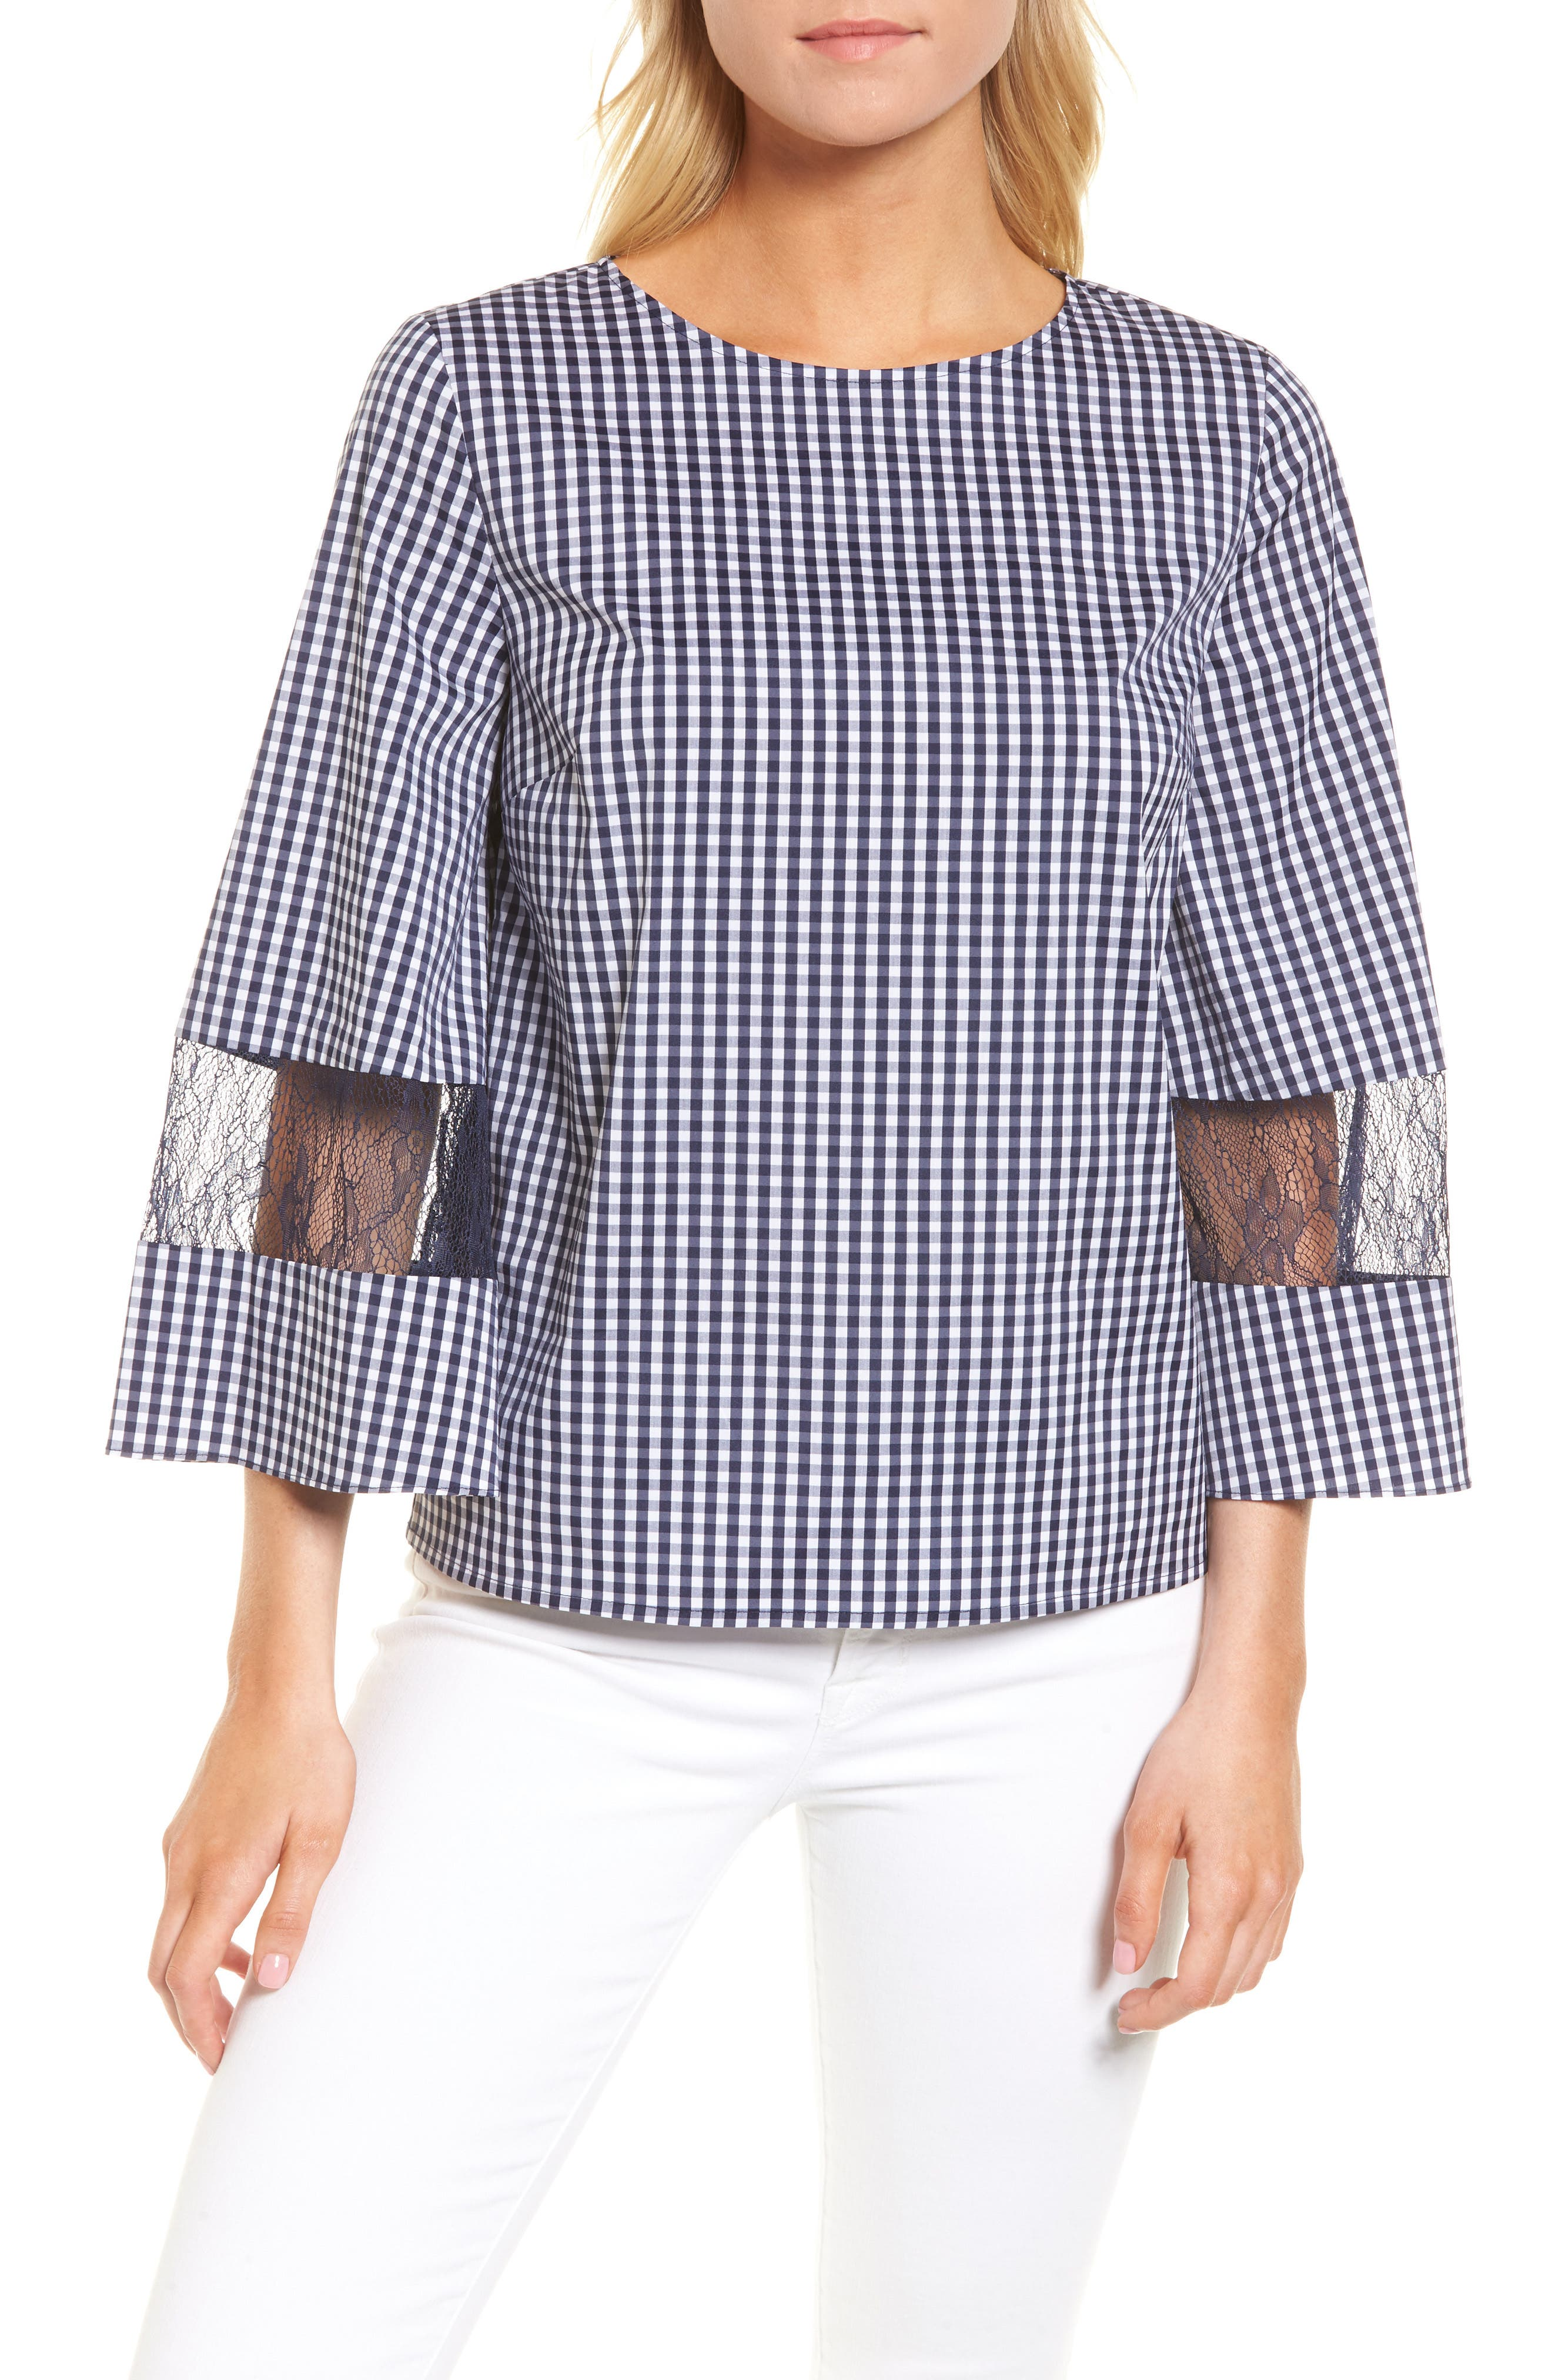 Gingham & Lace Blouse,                             Main thumbnail 1, color,                             Navy Evening- White Gingham